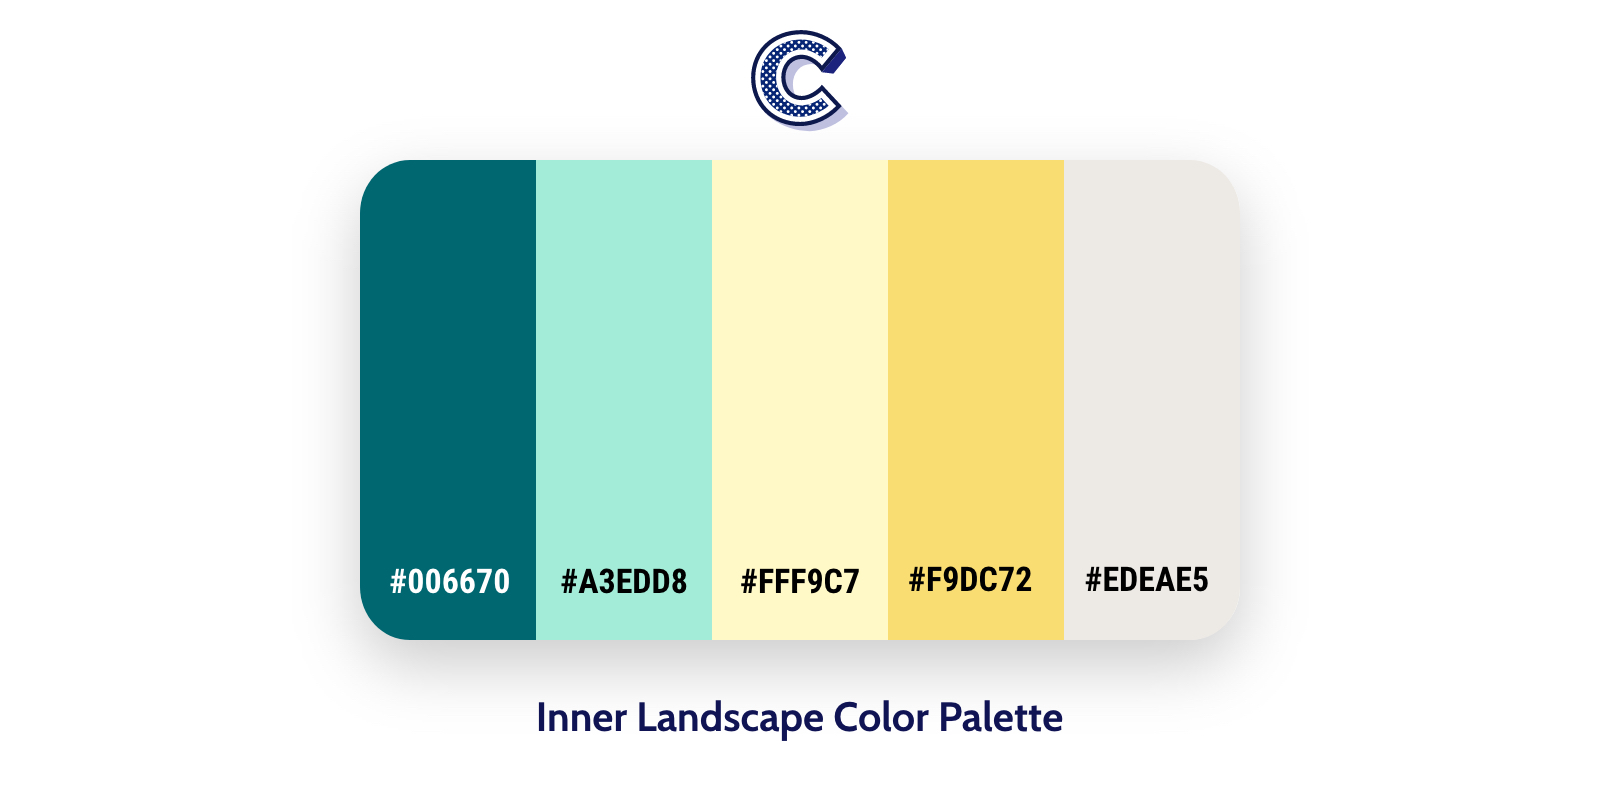 the featured image of inner landscape color palette